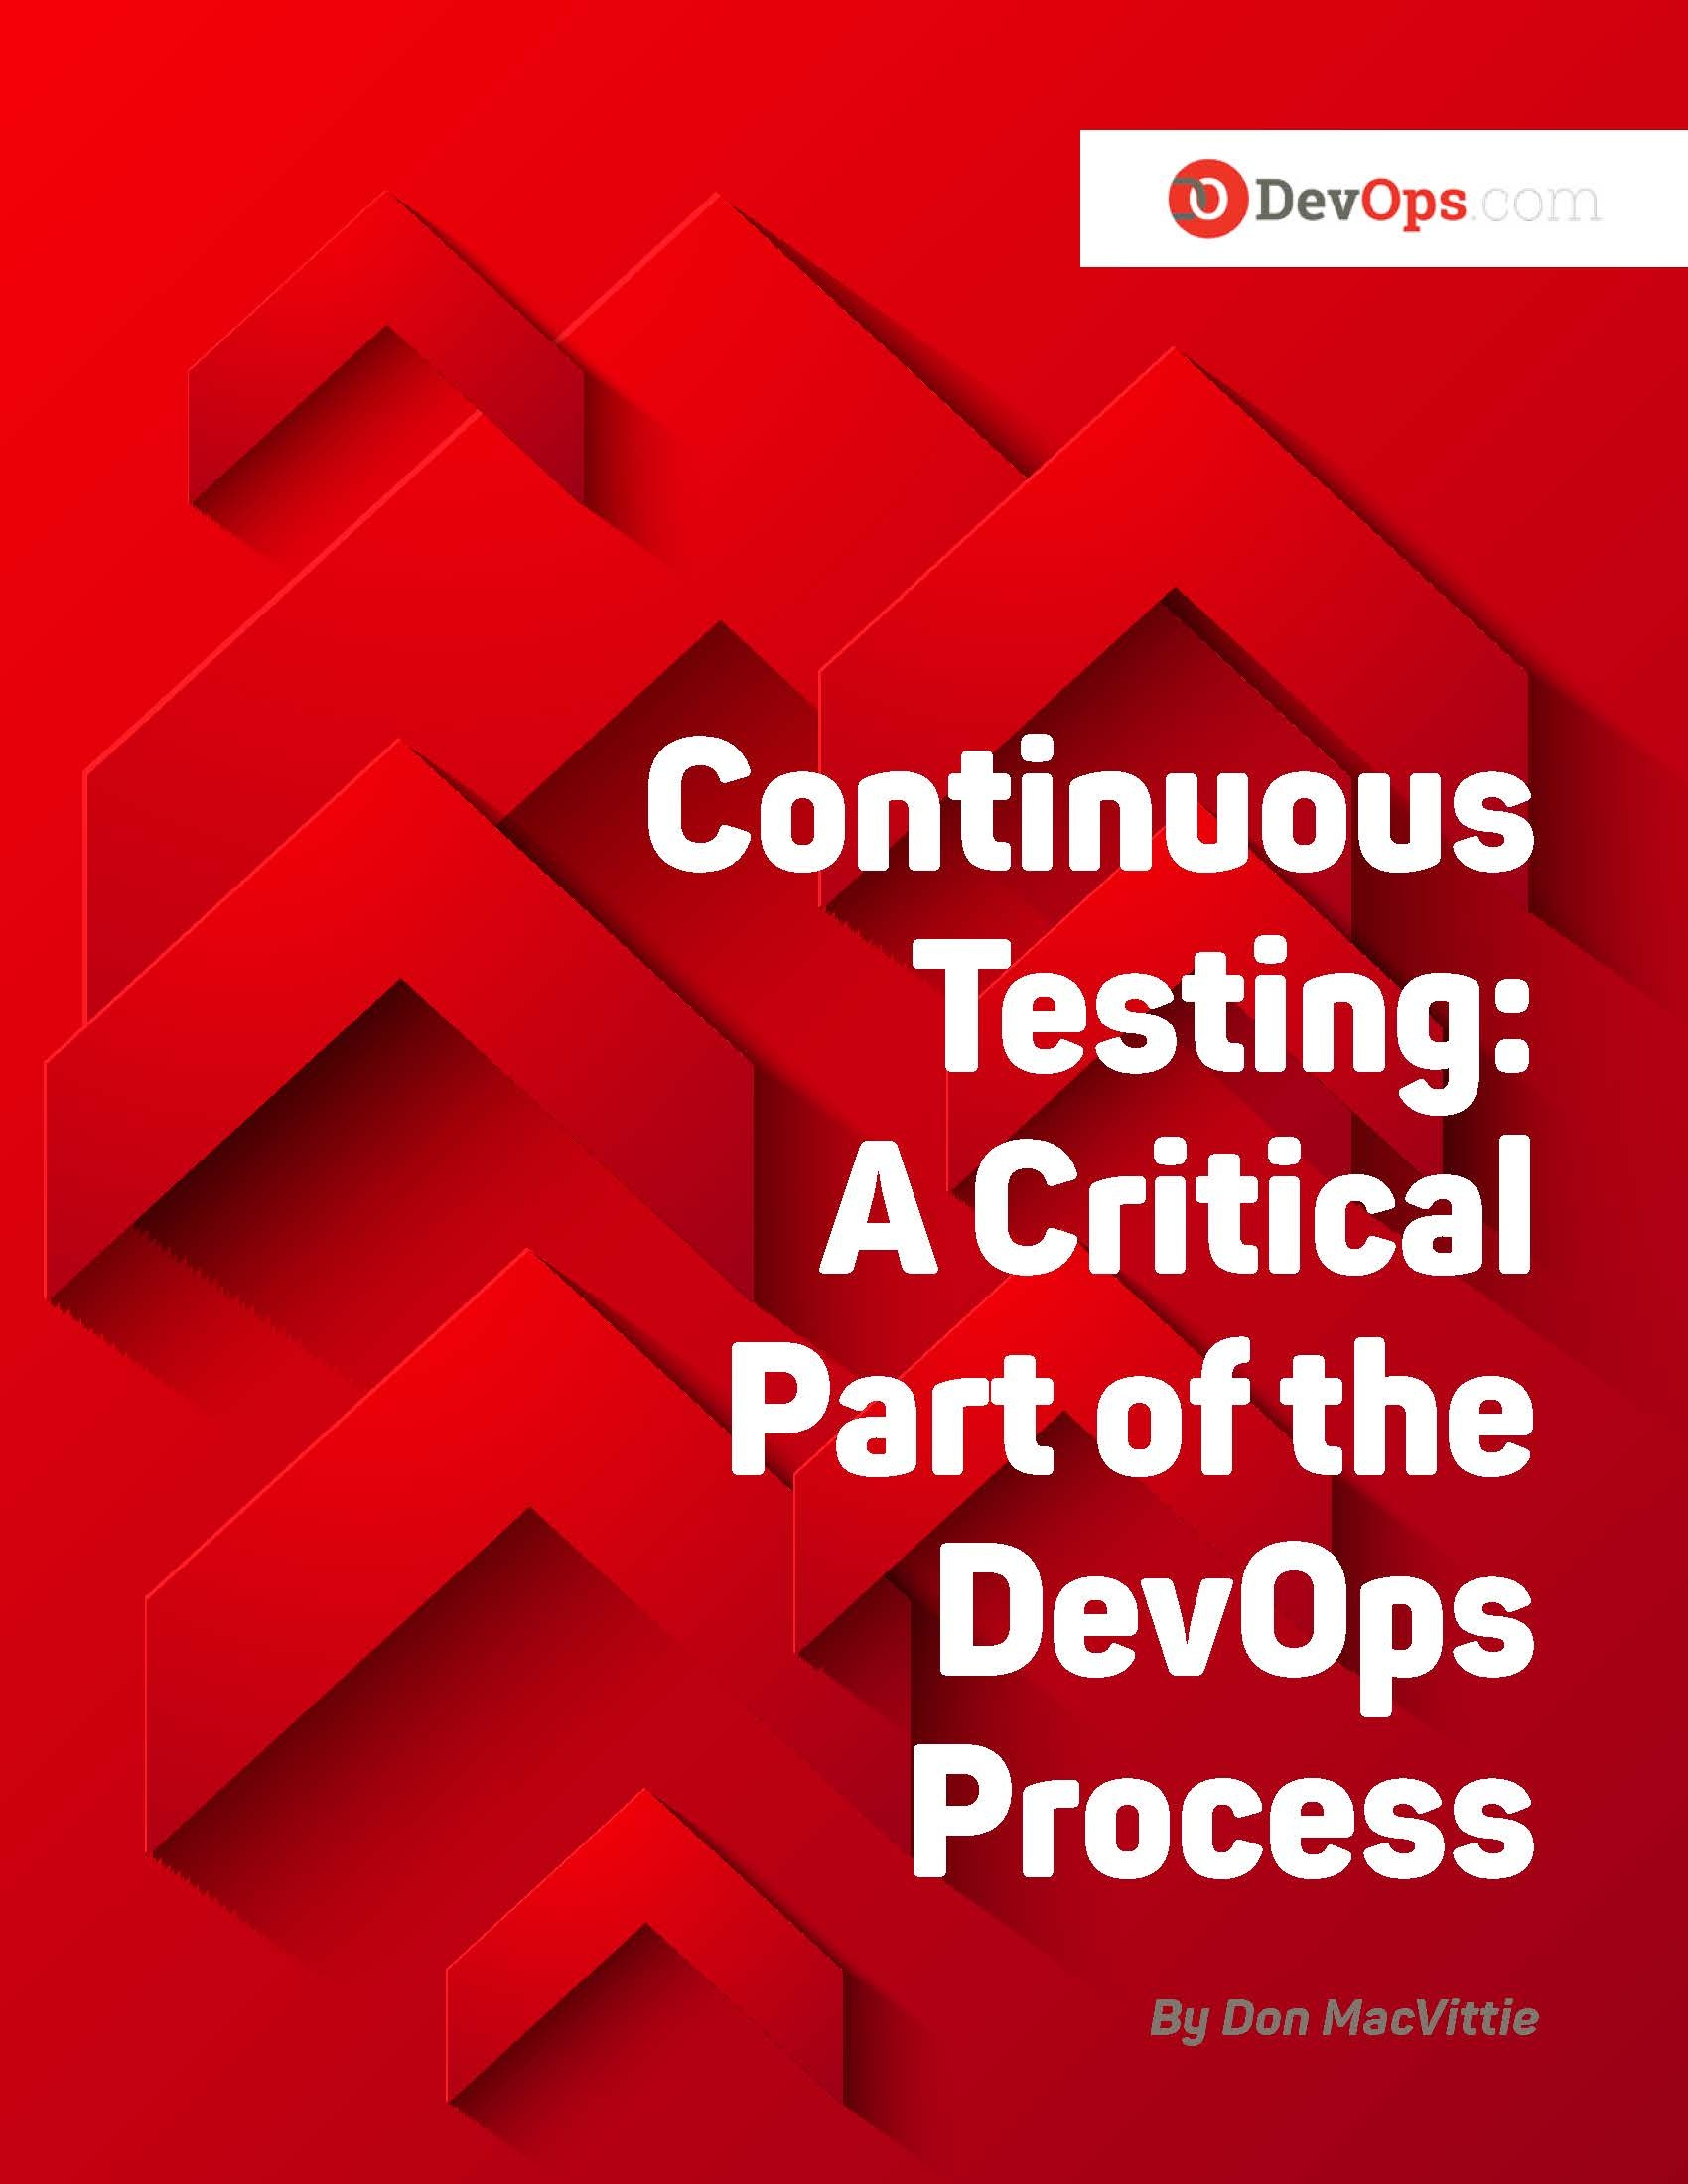 Continuous Testing: A Critical Part of the DevOps Process